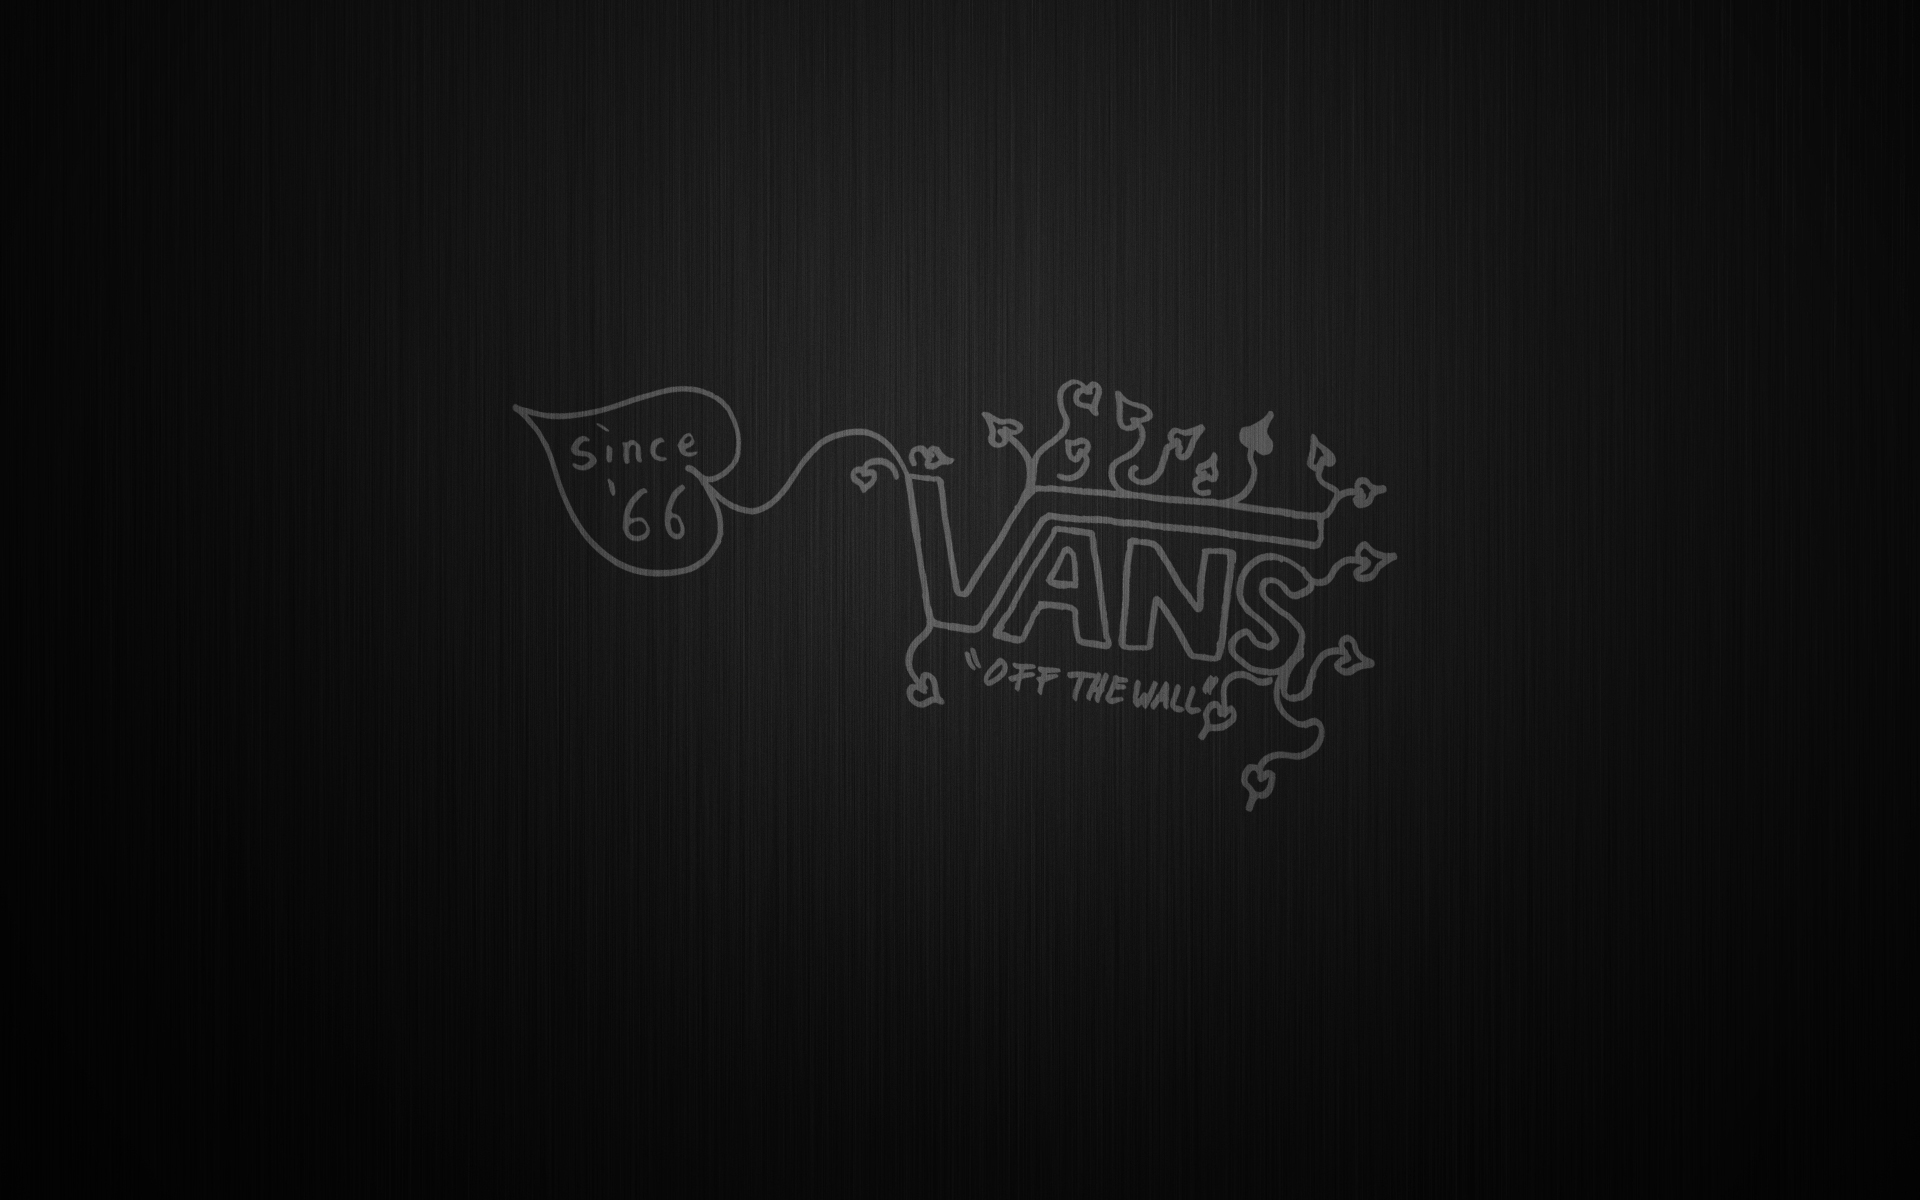 dark vans logo wallpaper 68306